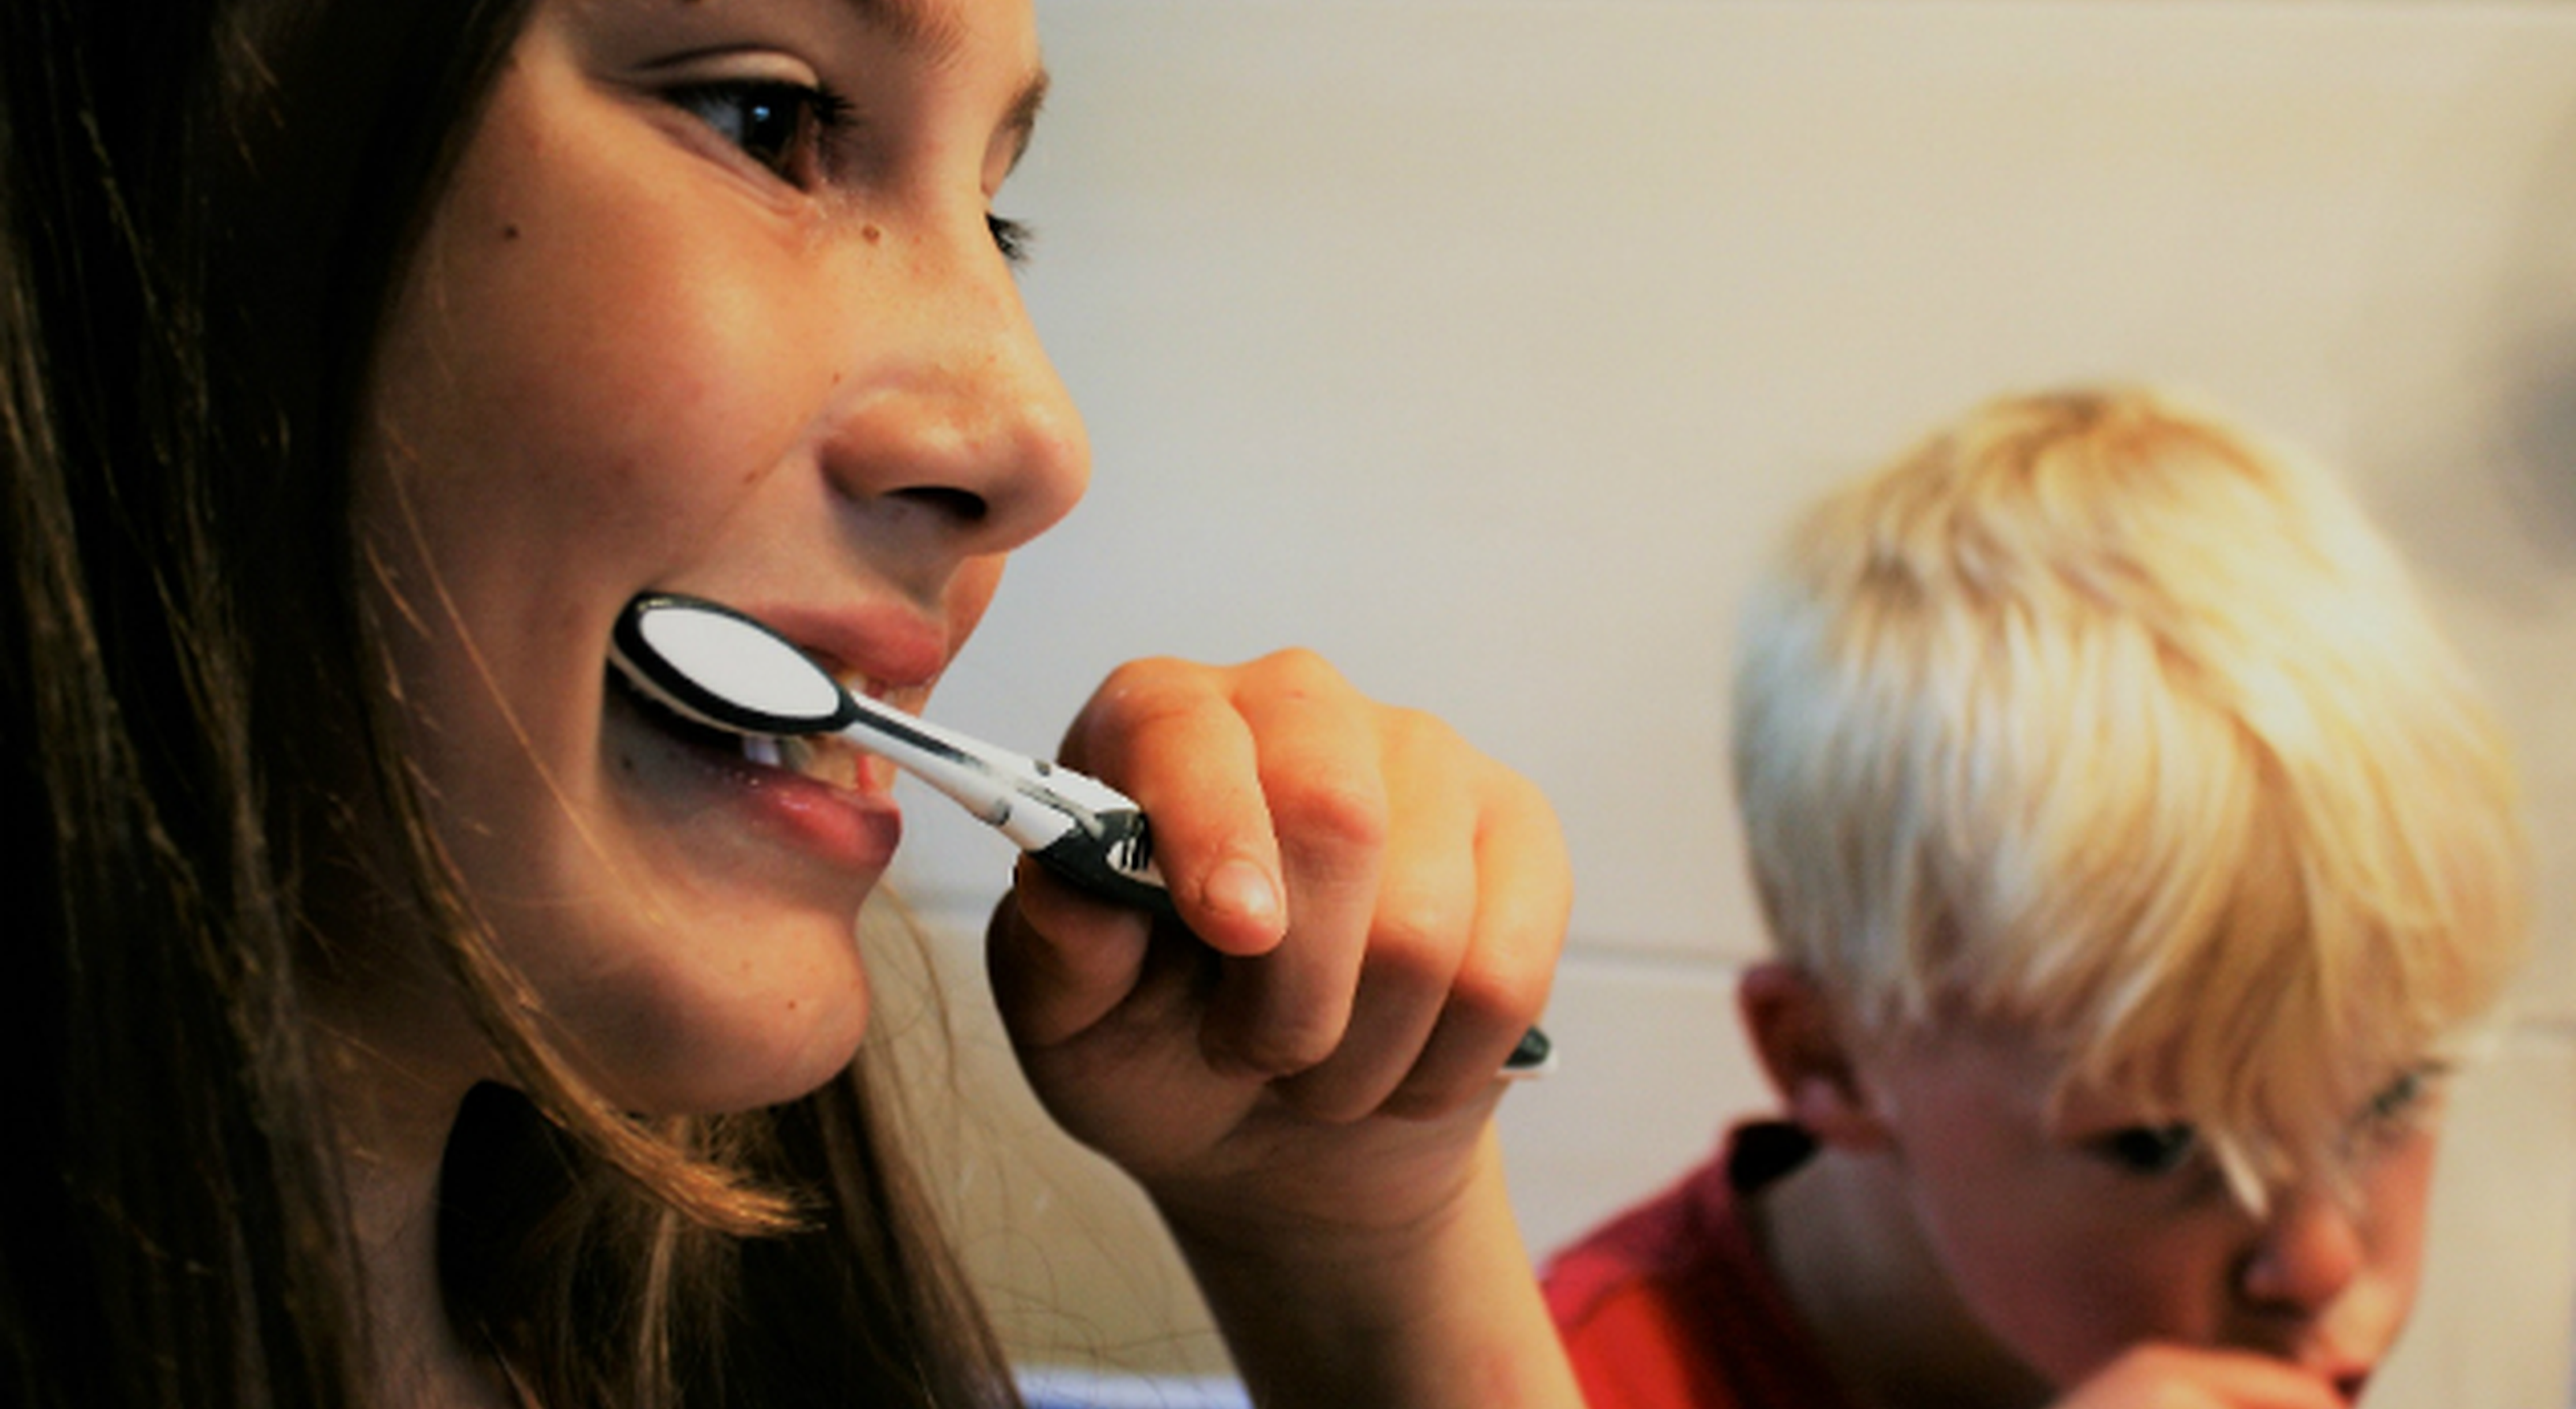 Two children brushing their teeth together